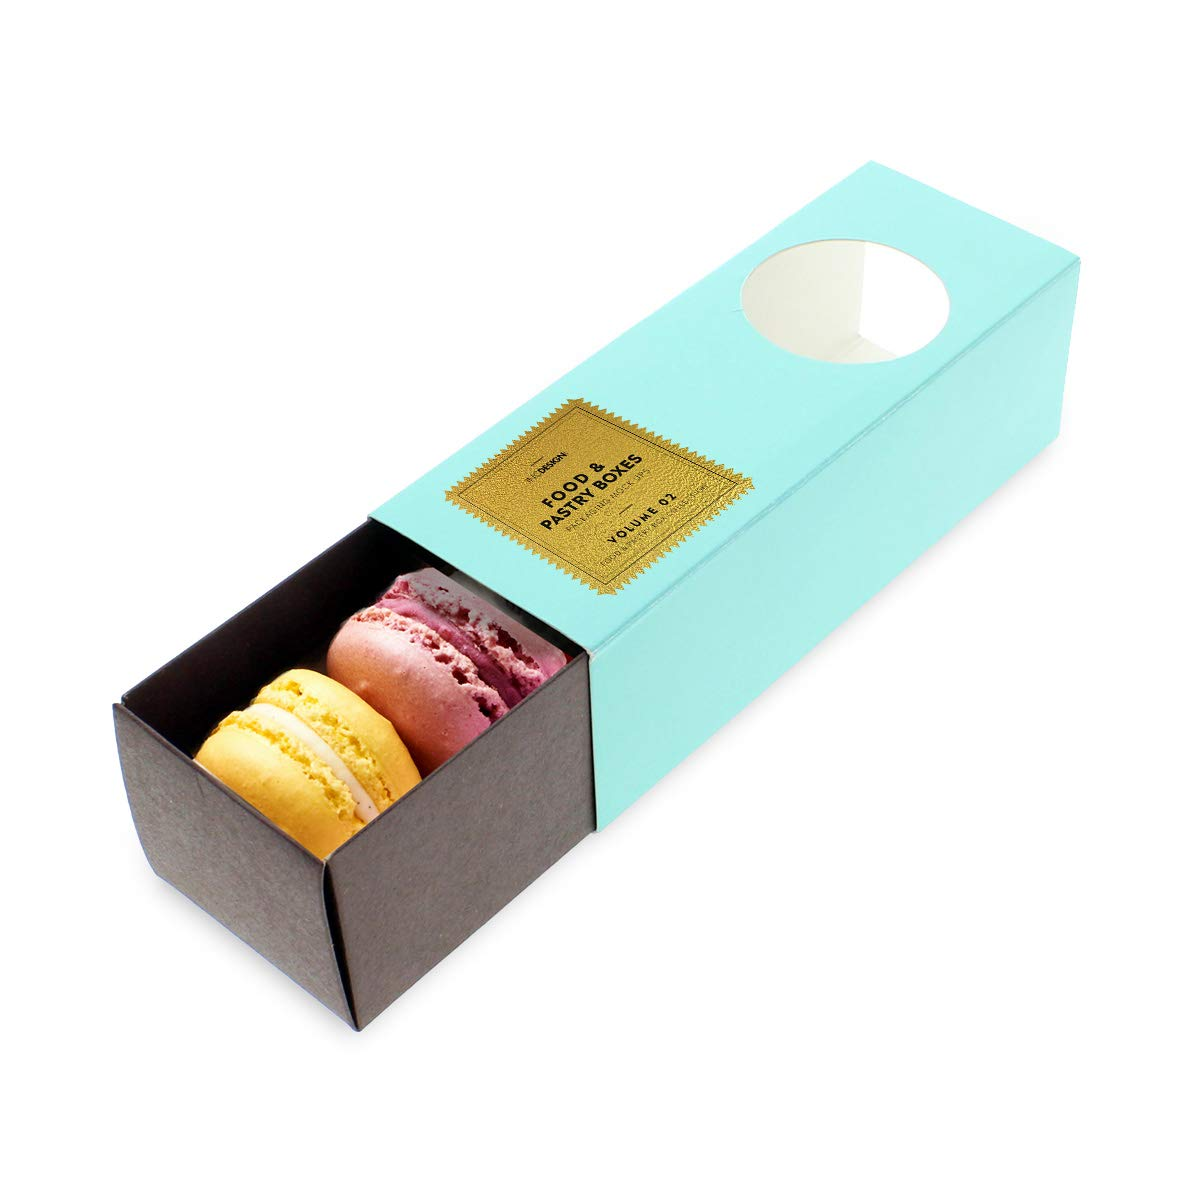 Linen and Bags Robin Blue Macaron Cookie Box Pack of 20 Bakery Treat Boxes for Gift Giving, Pastry Boxes, Party Favor Box, Chocolate Dessert Treat Packaging with Clear Window